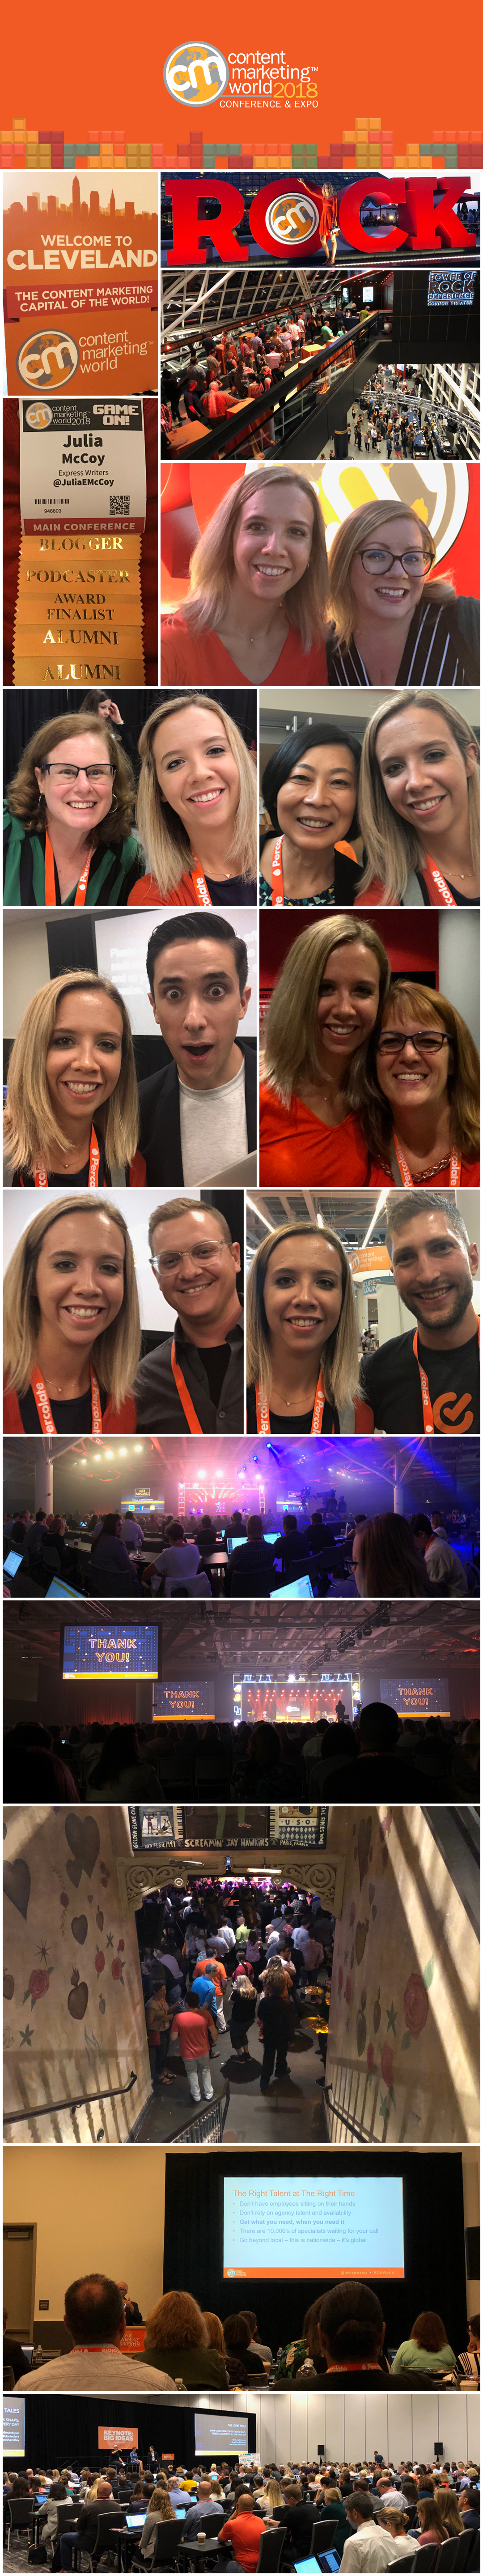 cmworld collage